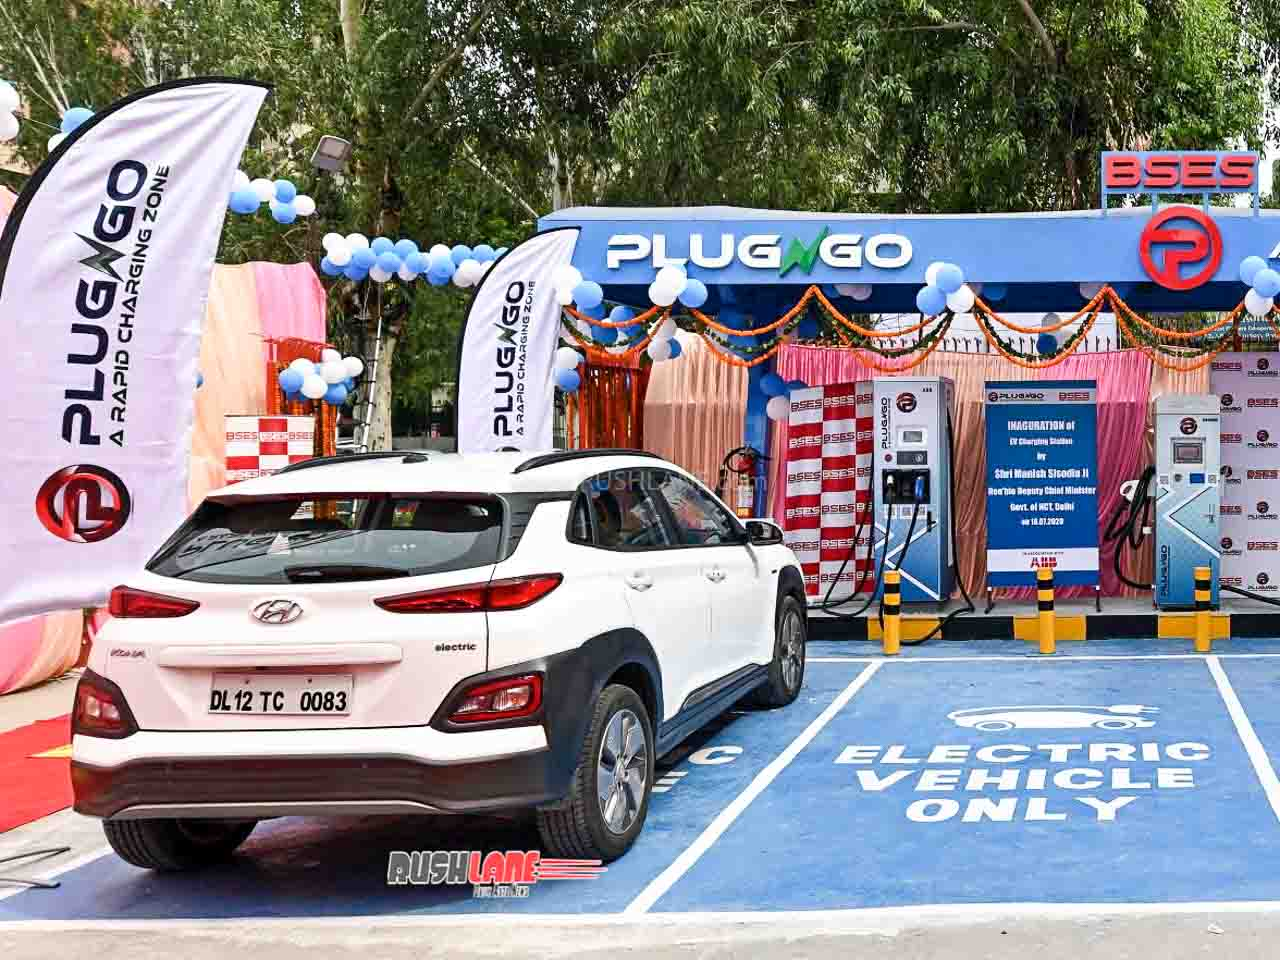 Hyundai Kona getting charged at the PlugNgo electric car charging station in Delhi